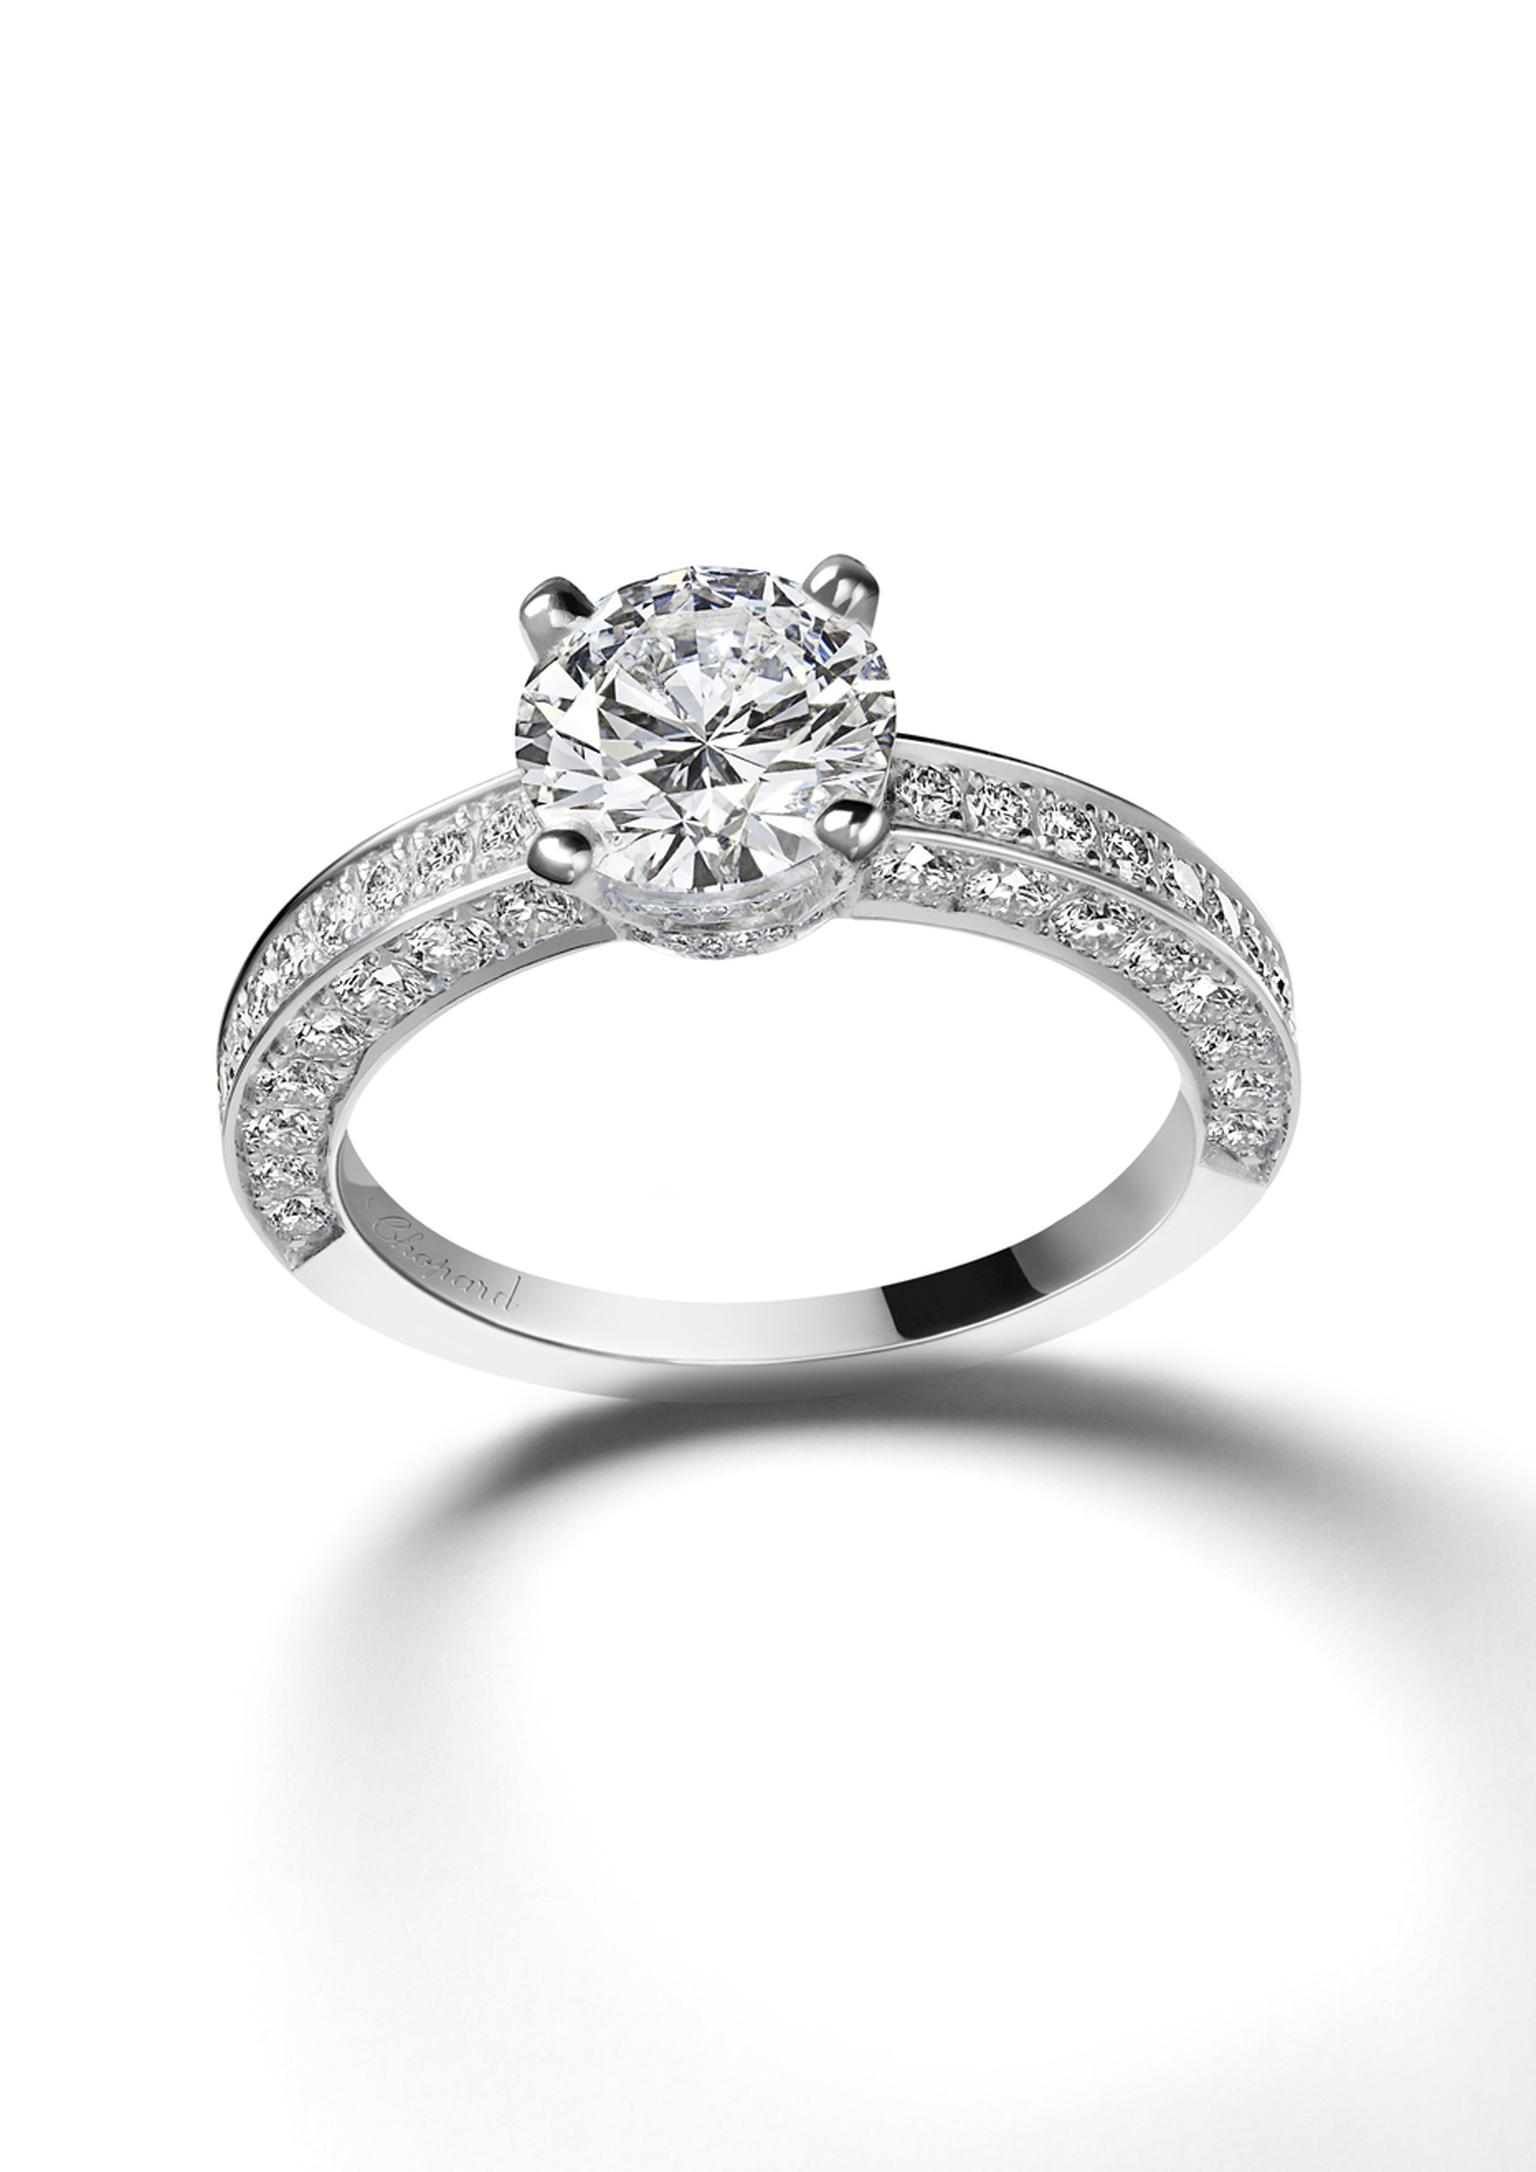 Chopard Passion for Happiness collection white gold solitaire diamond ring featuring an additional swath of diamonds along the tops and sides of the band.